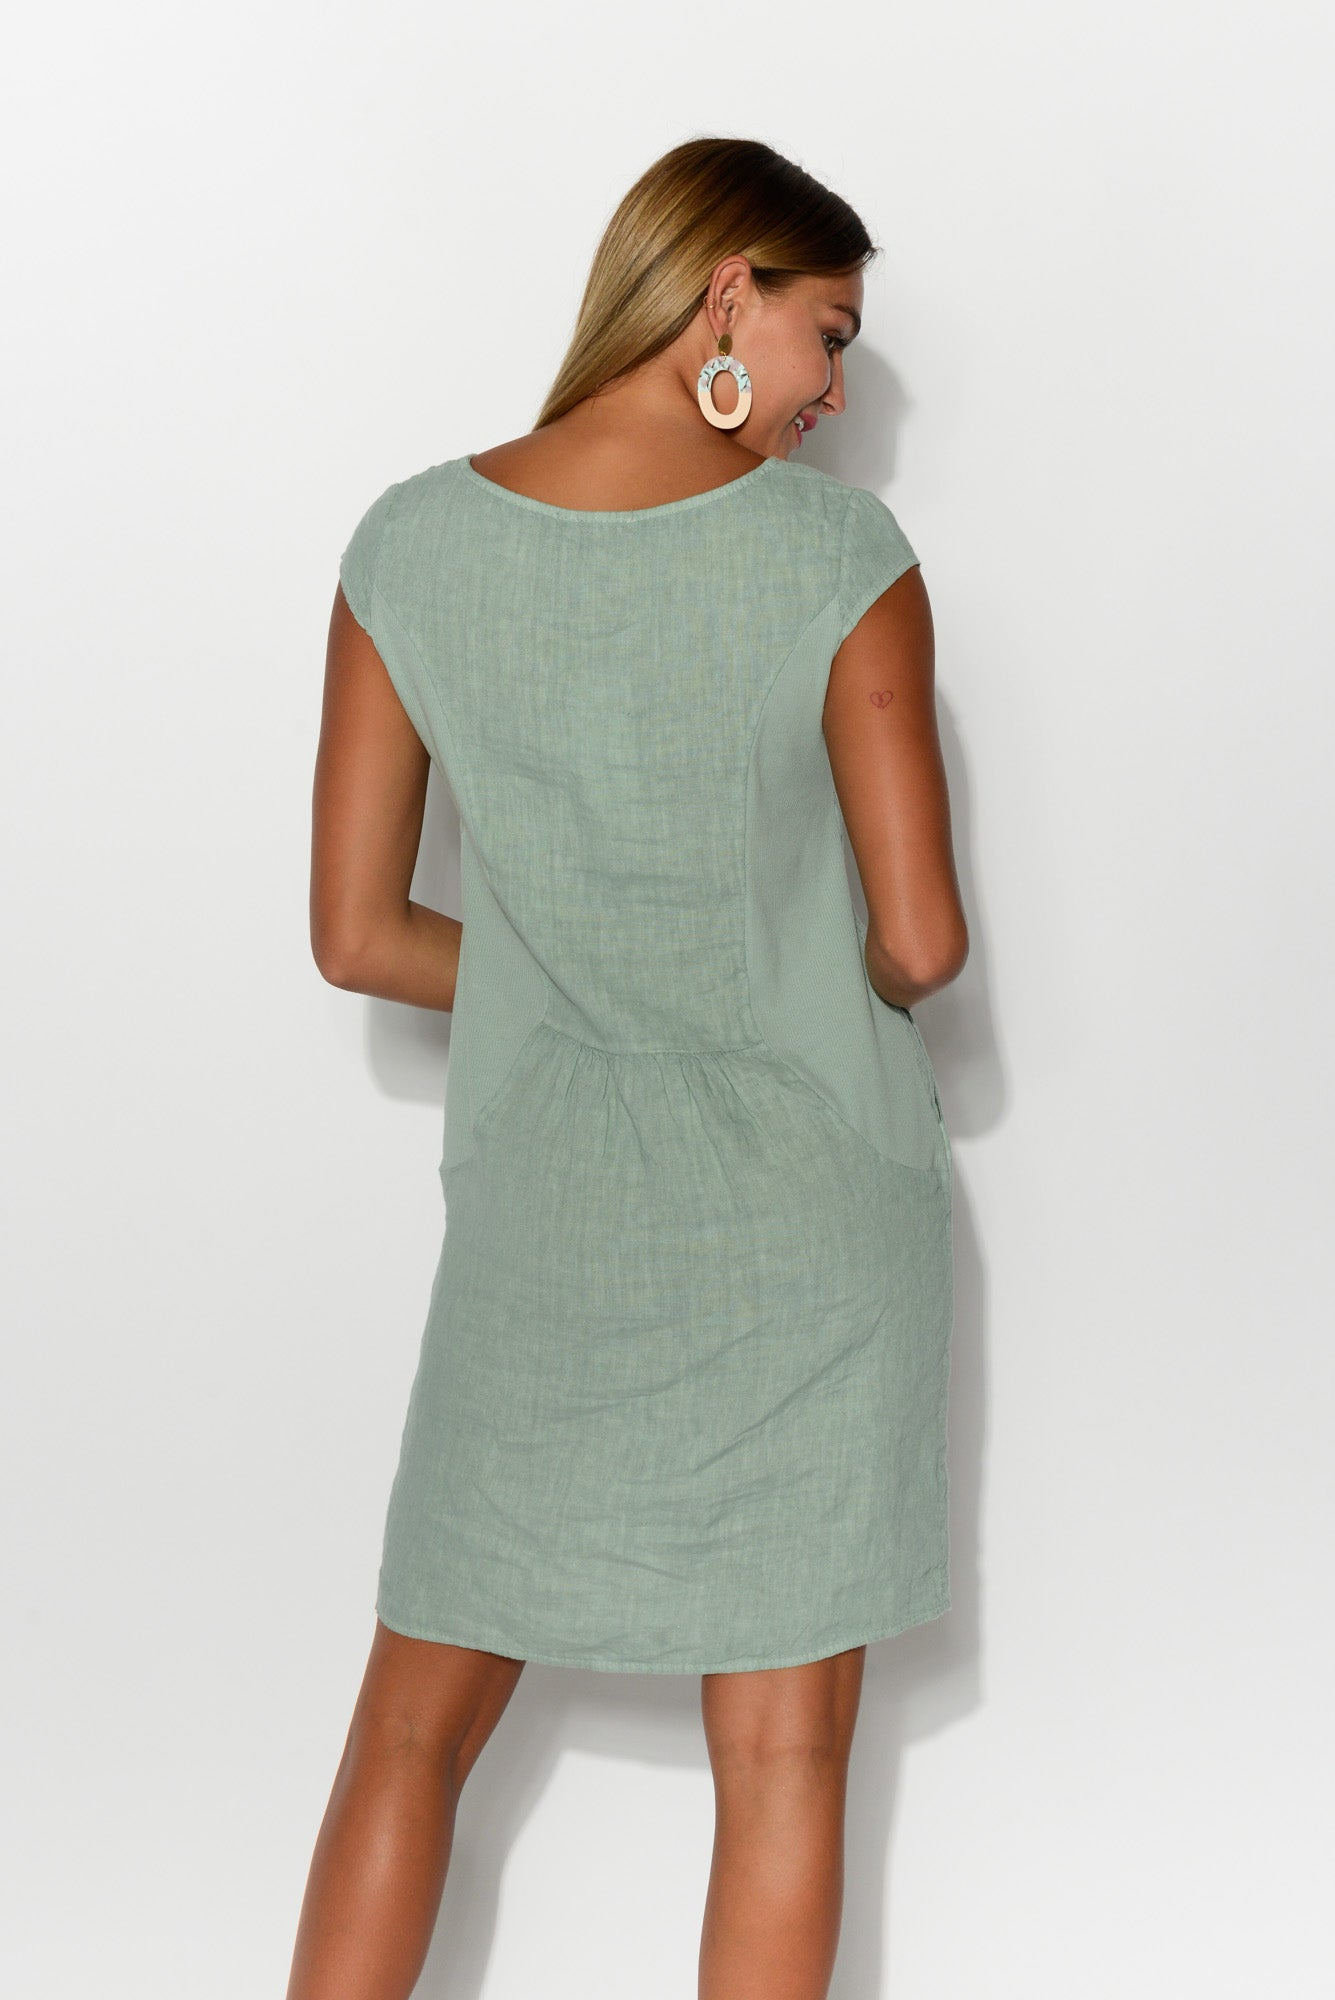 Florence Sea Green Linen Dress - Blue Bungalow